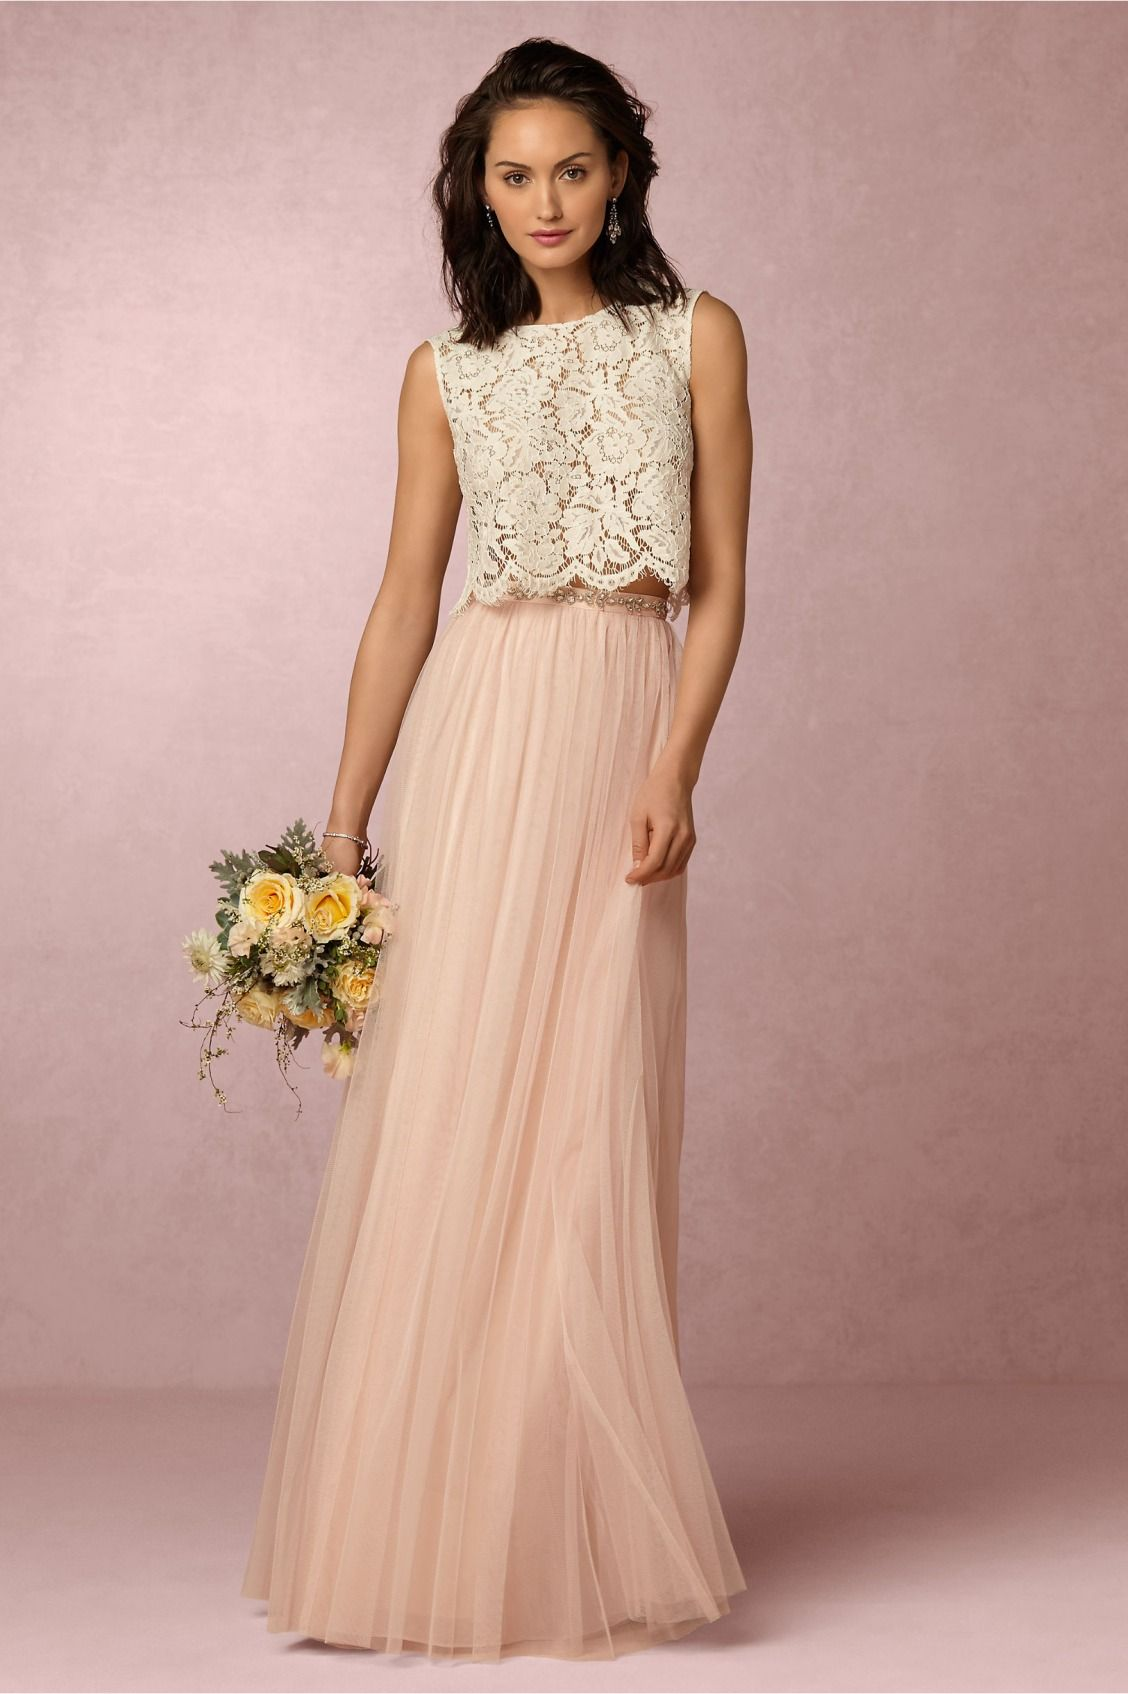 separates Cleo Top & Louise Tulle Skirt from BHLDN